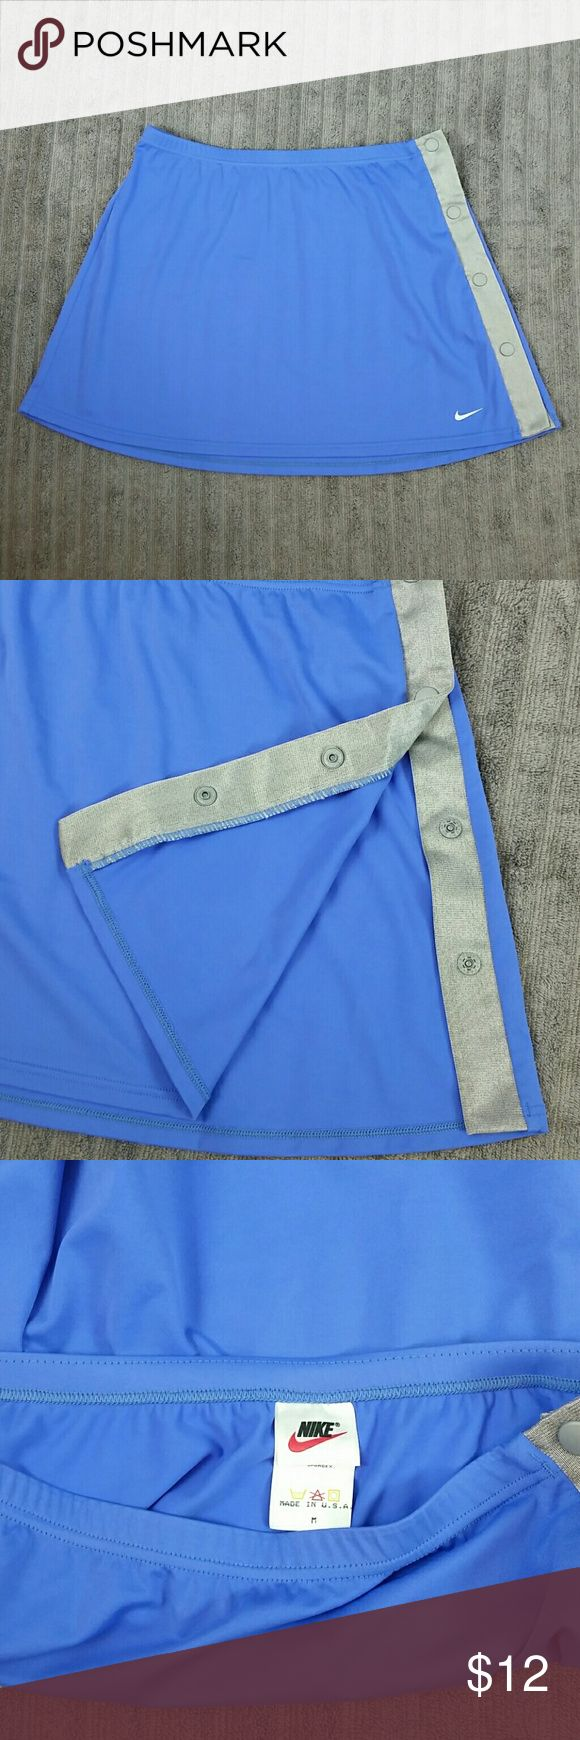 "Nike Cover-up Mini Skirt w/Side Snaps Blue & Gray Pretty Skirt.  Blue with gray stripe on side.  4 plastic snaps that work well.  79% Nylon  21% Lycra Spandex   Measurements  (laying flat):  Length 14"",   Waist Across 13.5""  Color:  Blue & Gray Nike Skirts Mini"